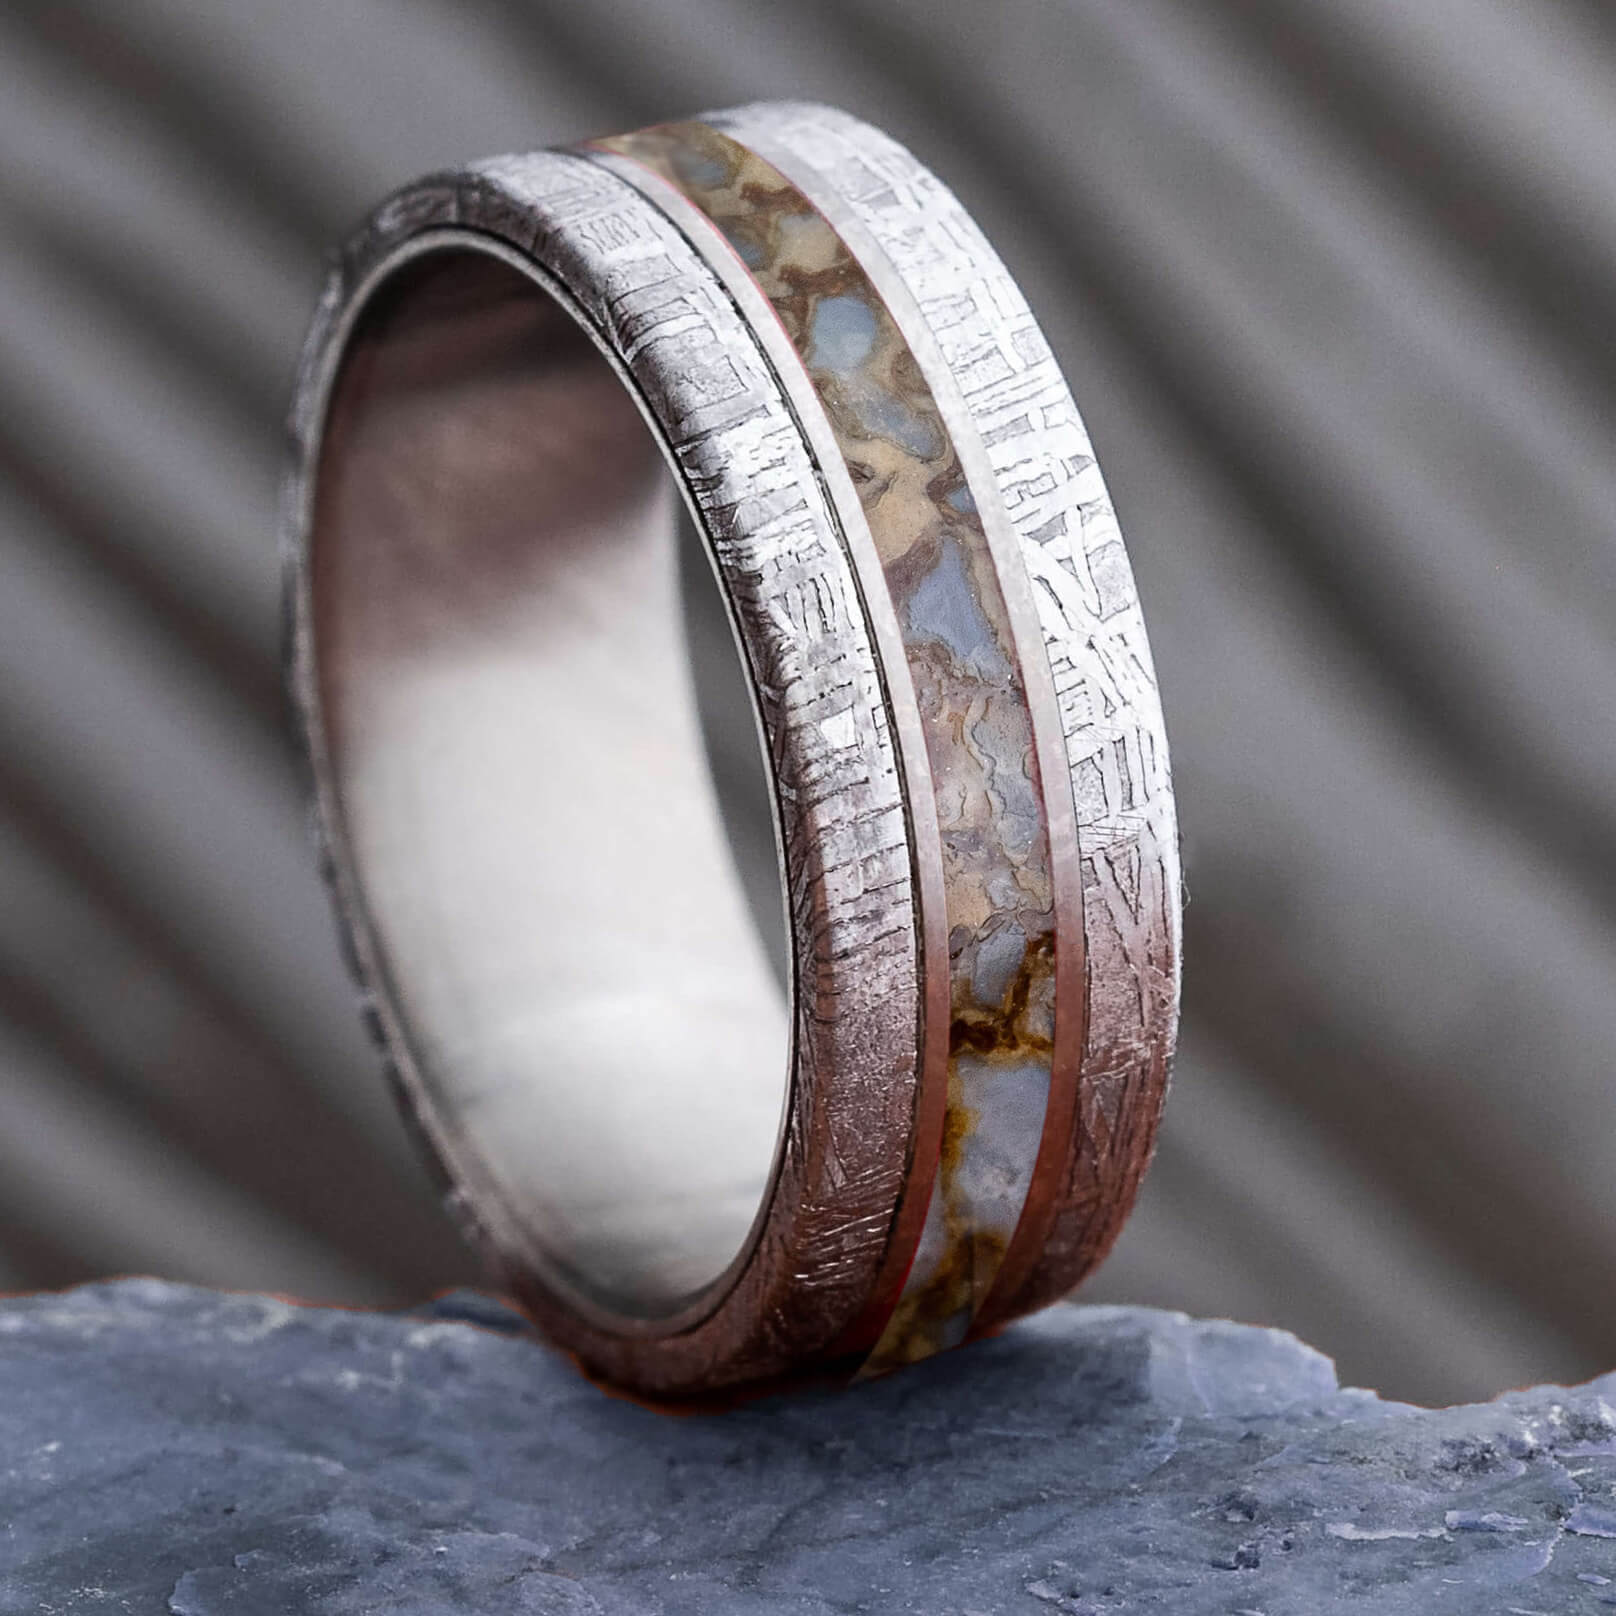 Dinosaur Fossil & Meteorite Men's Wedding Ring in Titanium-1855 - Jewelry by Johan